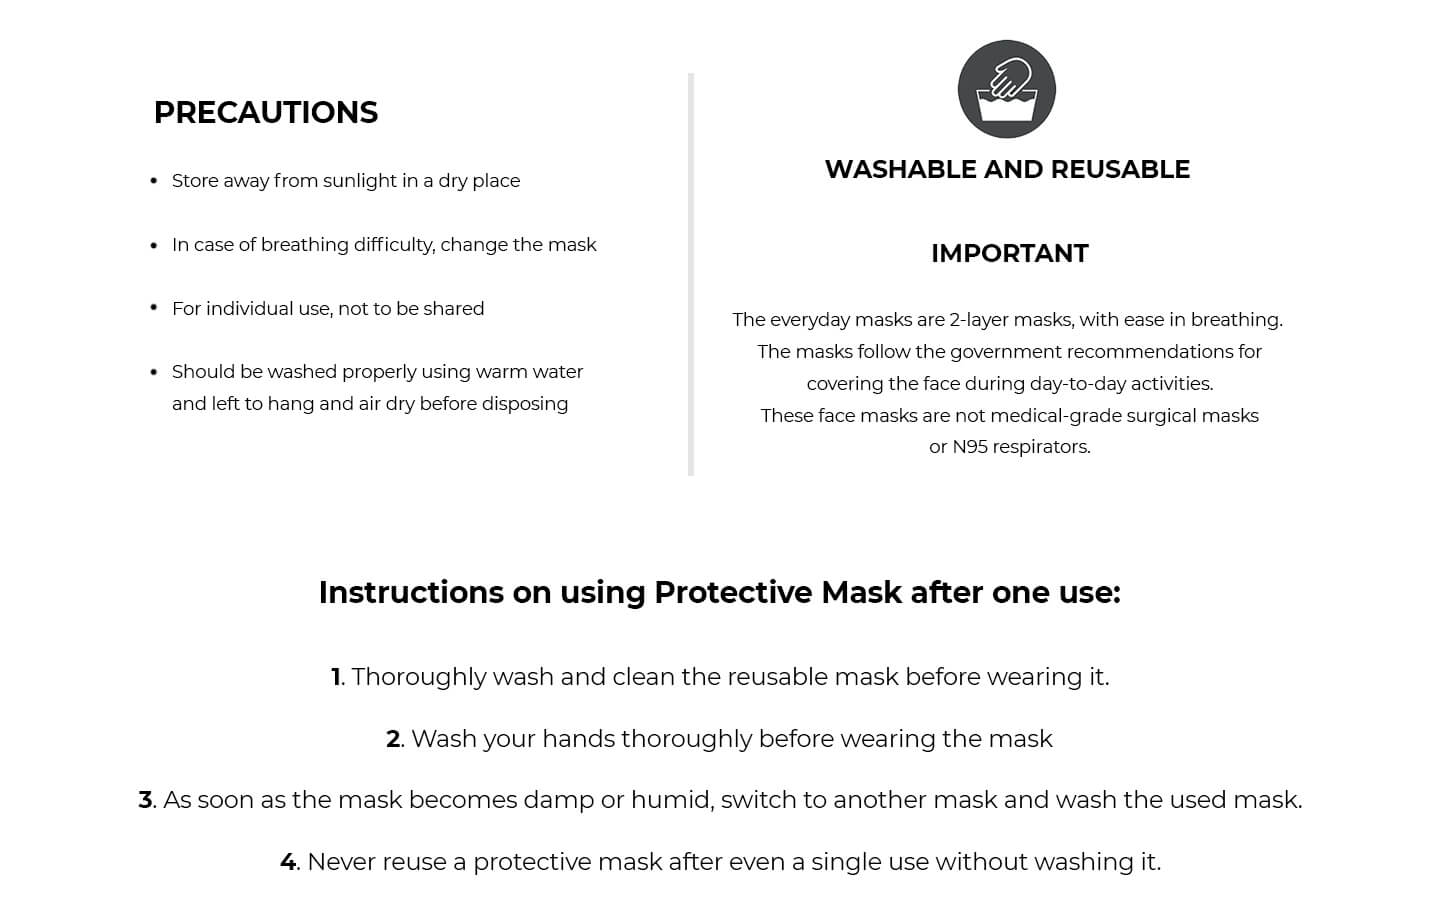 2-Layer Kid's Everyday Protective Mask - Pack of 3 (Hearty Kitty! Monsterman! Oink Oink) Description Image Website 3@Bewakoof.com